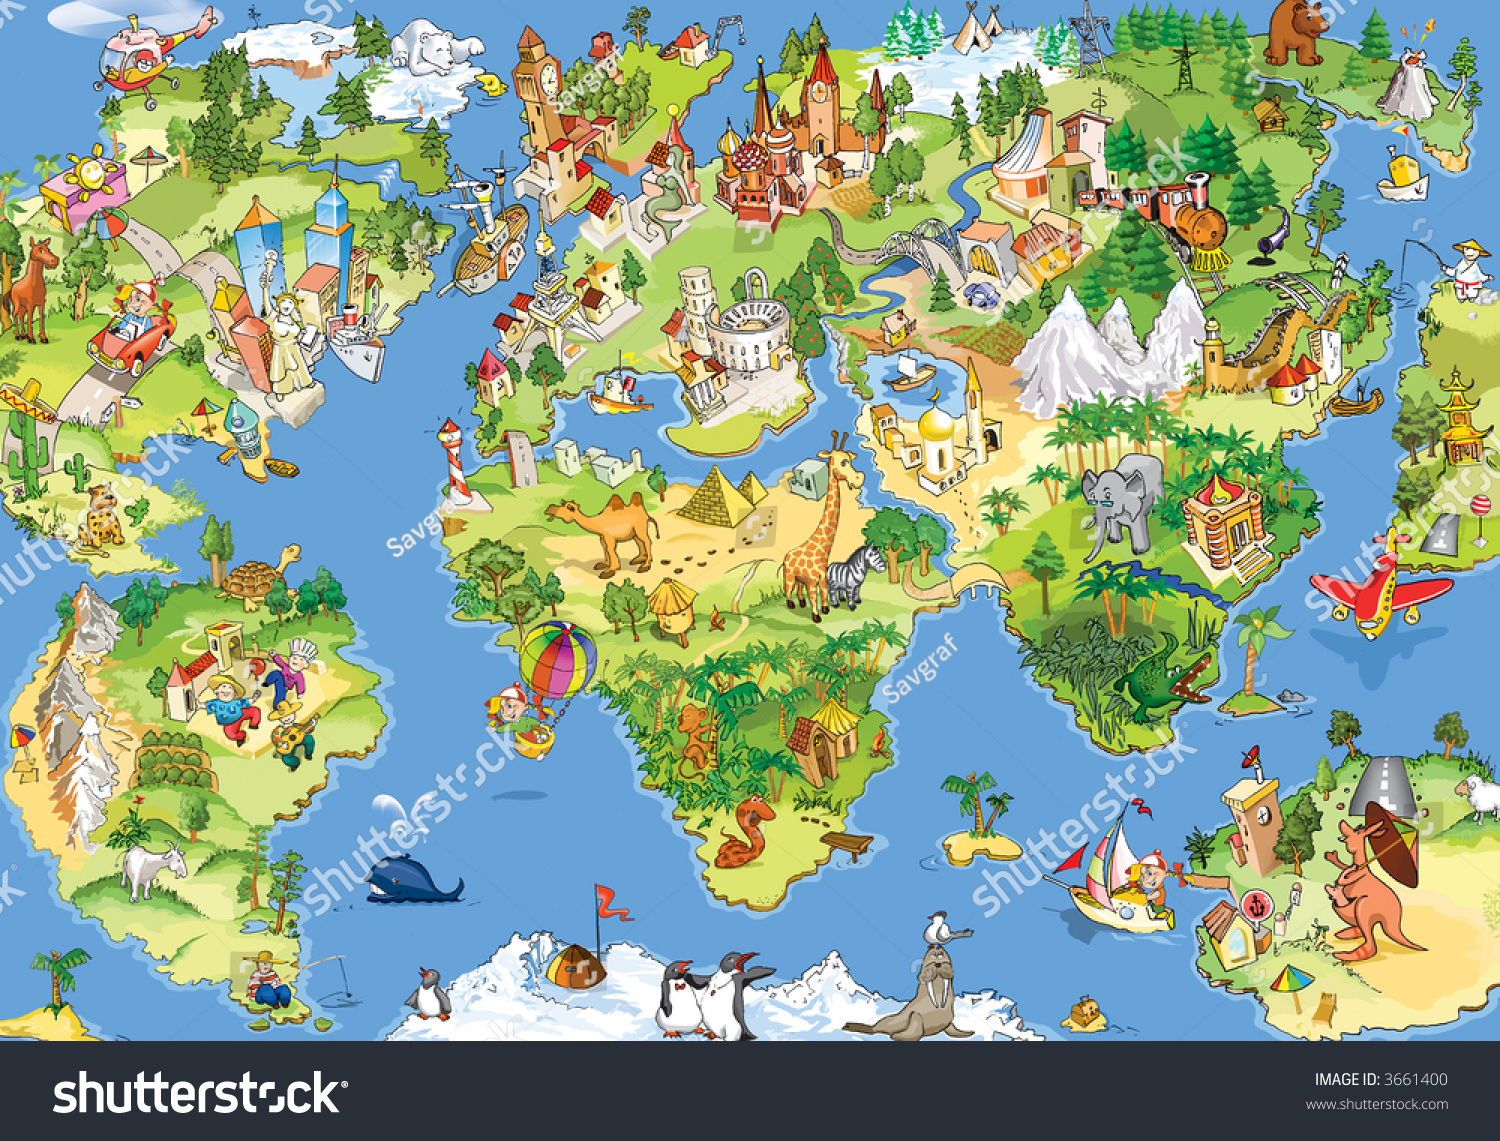 Great funny cartoon world map all ilustracin en stock 3661400 great and funny cartoon world map all sightseeings in all continents illustration for kids gumiabroncs Choice Image